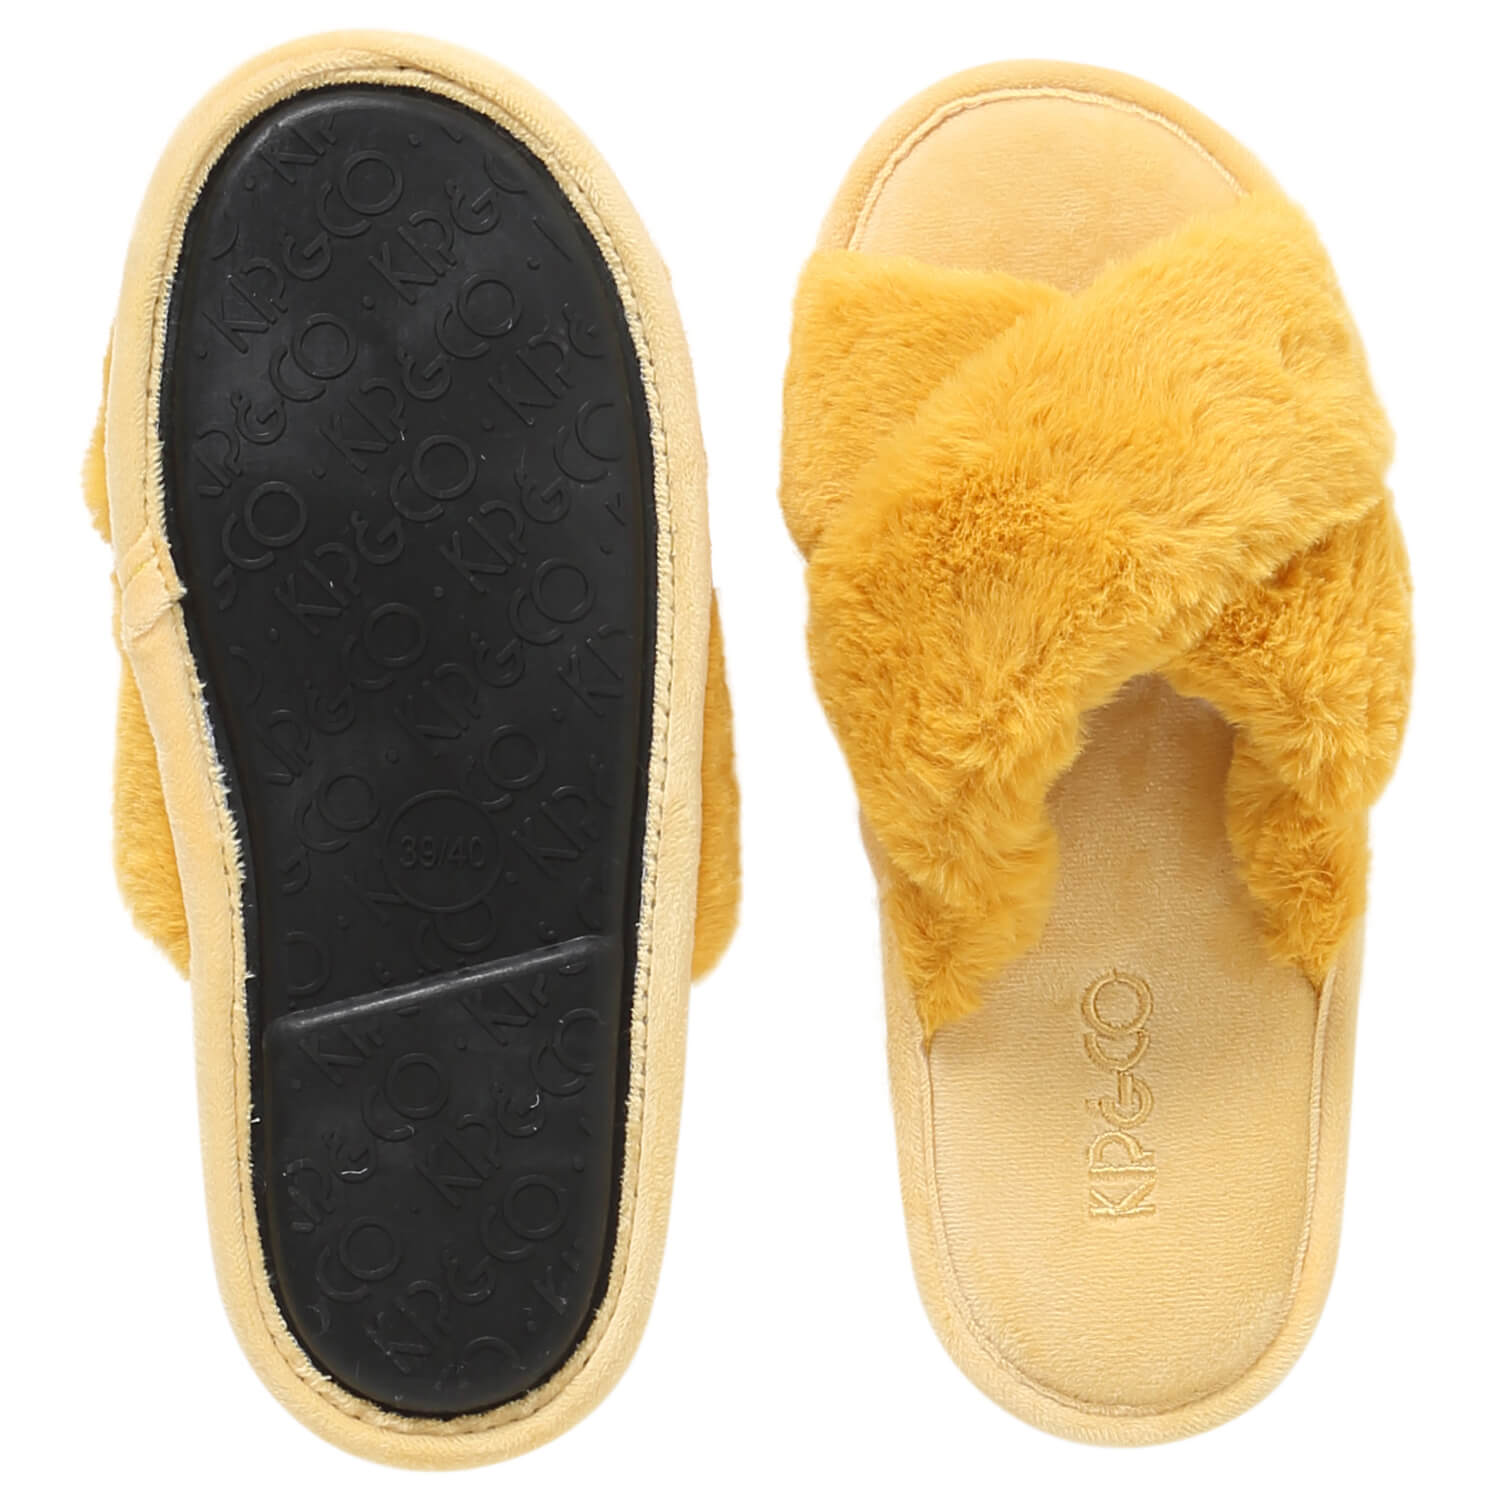 Kip and co slippers Sunshine Yellow | The Home Maven